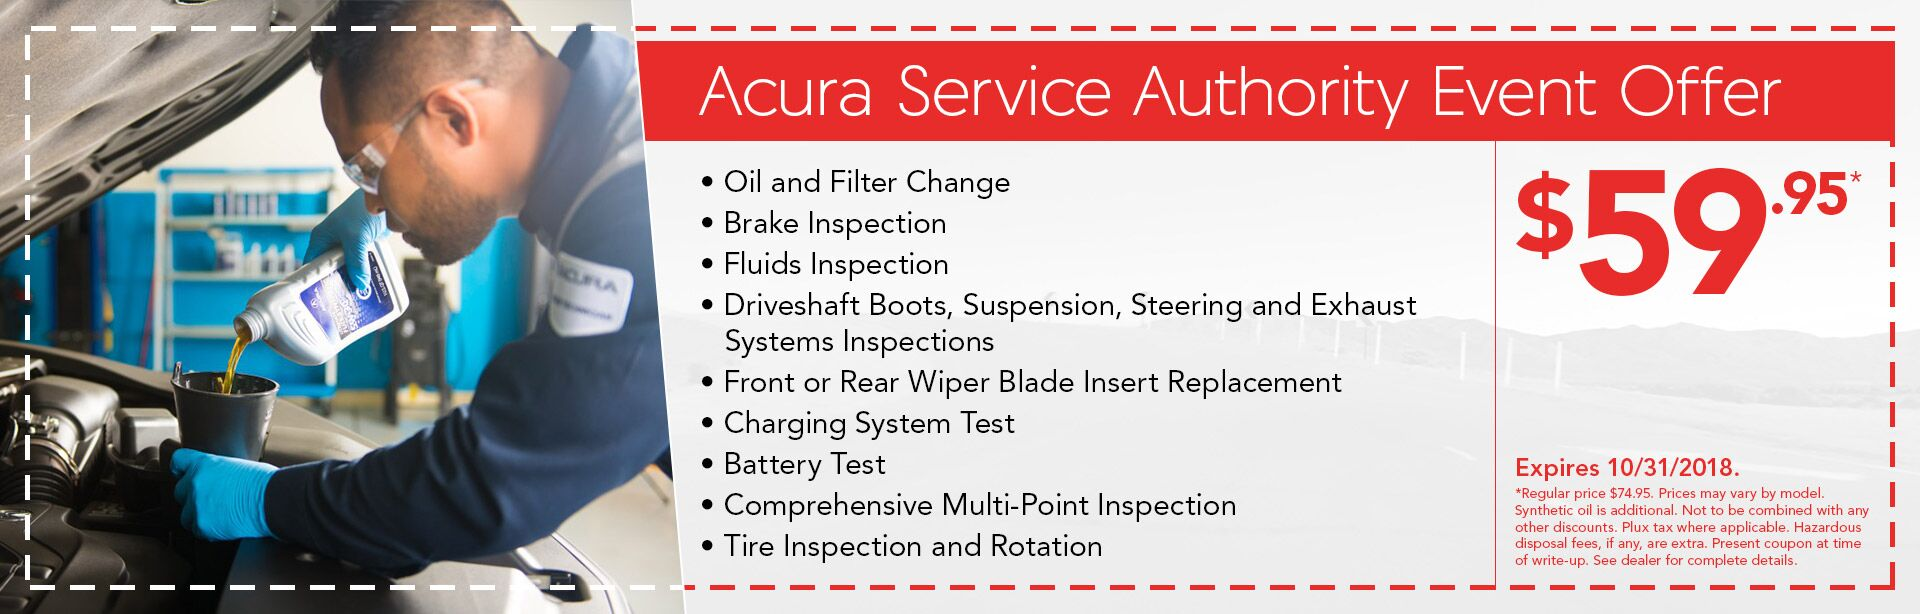 Las Vegas Nevada Acura Dealership CardinaleWay Acura - Acura coupons oil change